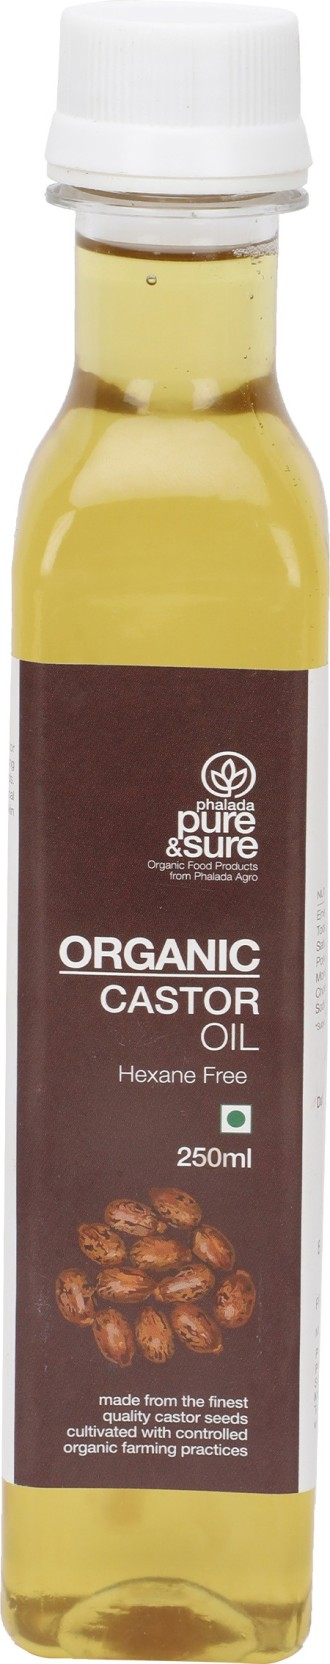 Pure & Sure Organic Castor Oil 250 ml Plastic Bottle Price in India